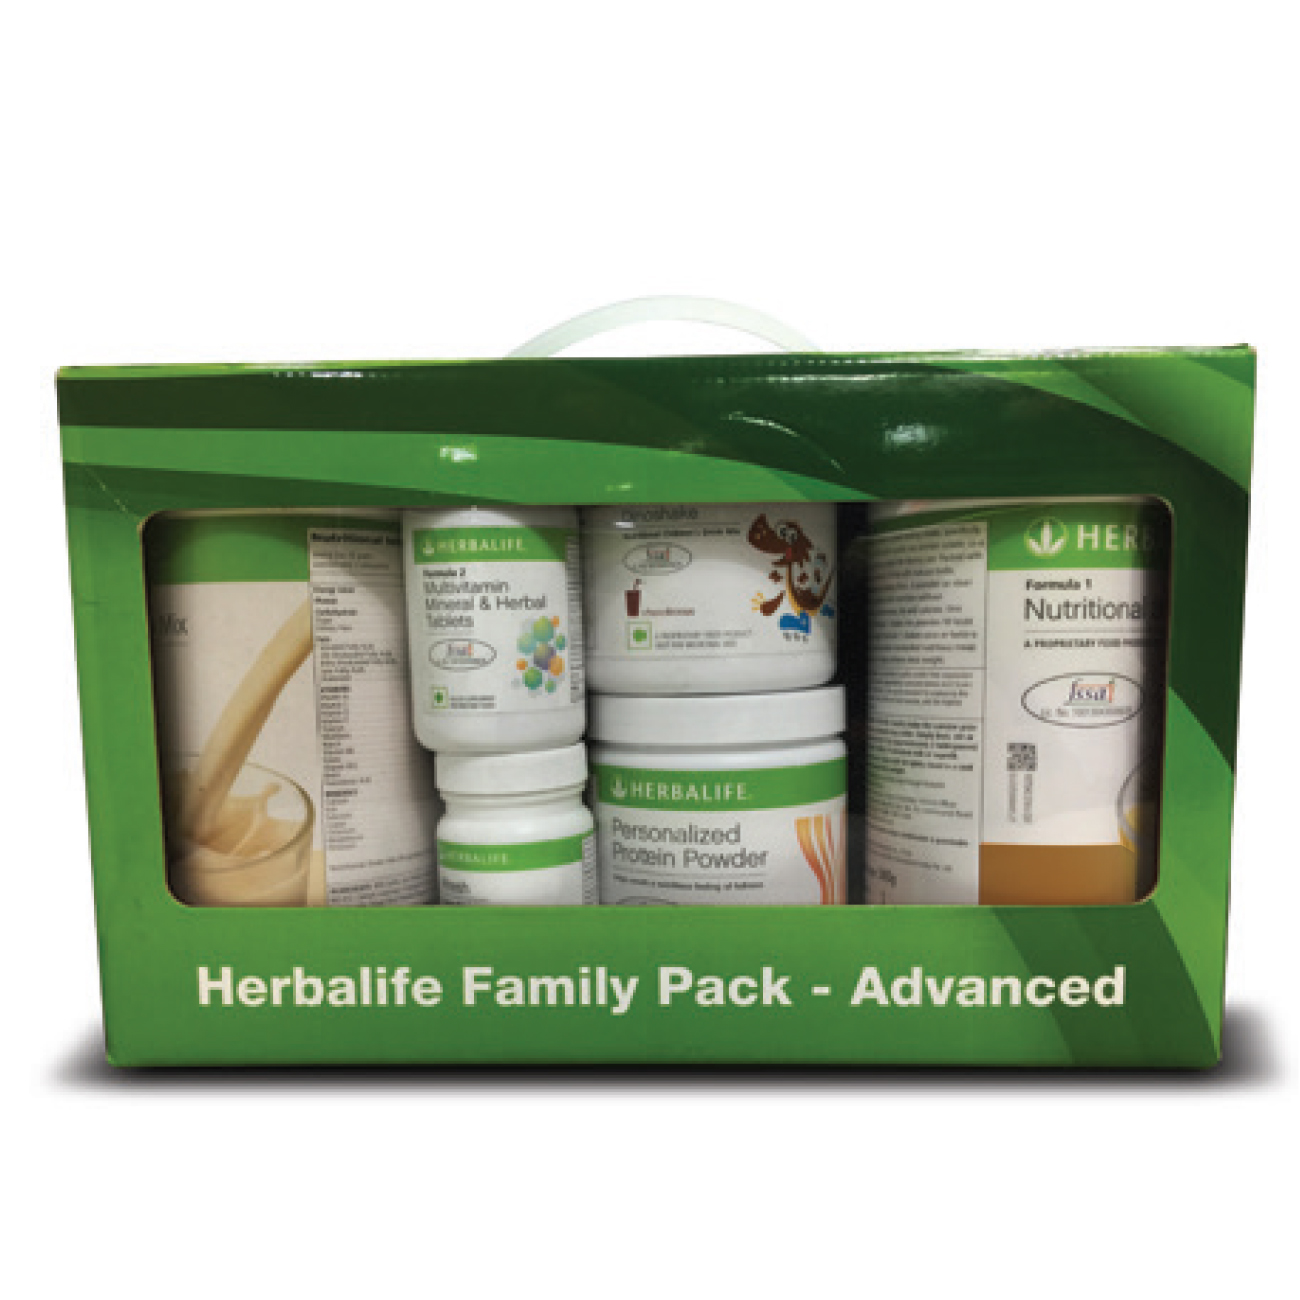 Herbalife Family Pack - Advanced